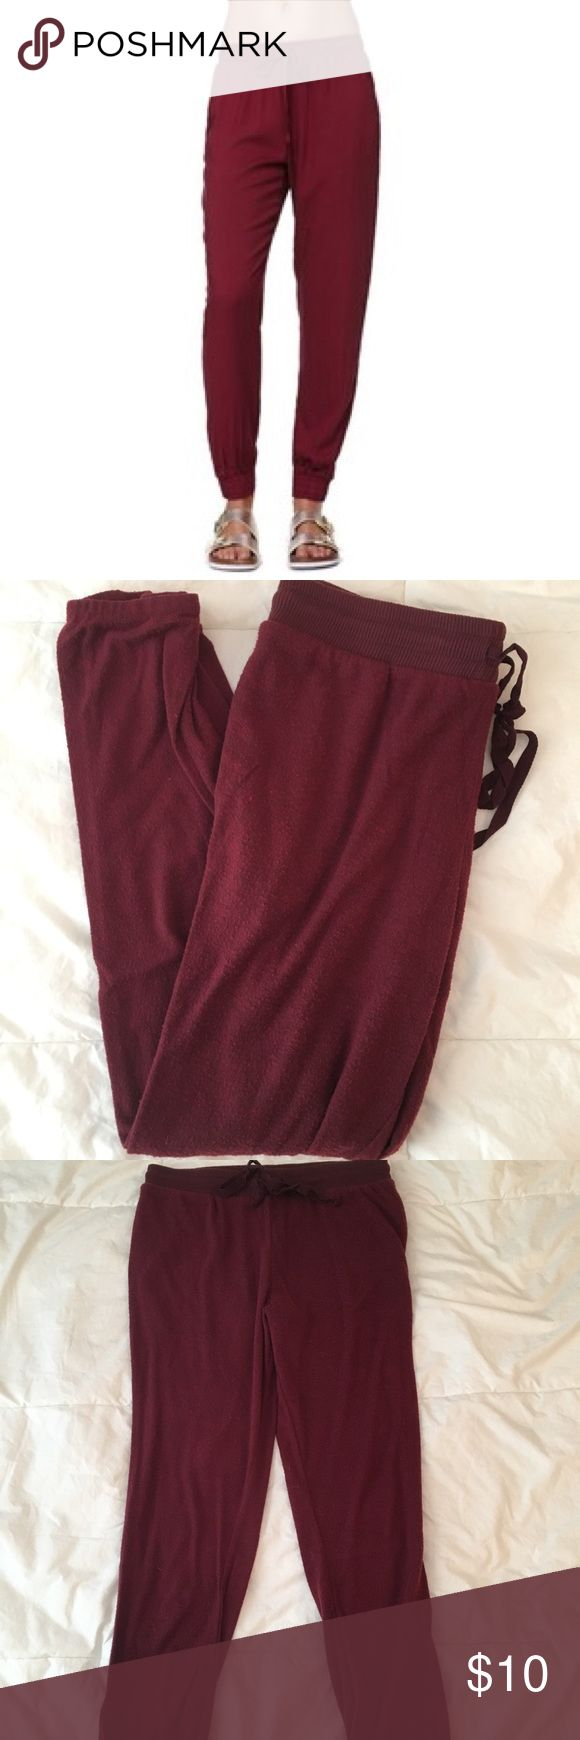 LA Hearts Maroon Joggers Maroon joggers from LA Hearts, PacSun. The pilling was intentional, they were made like that. Size M but also fits a S. SUPER soft and comfortable! Worn maybe 5 times. Open to offers!! PacSun Pants Track Pants & Joggers